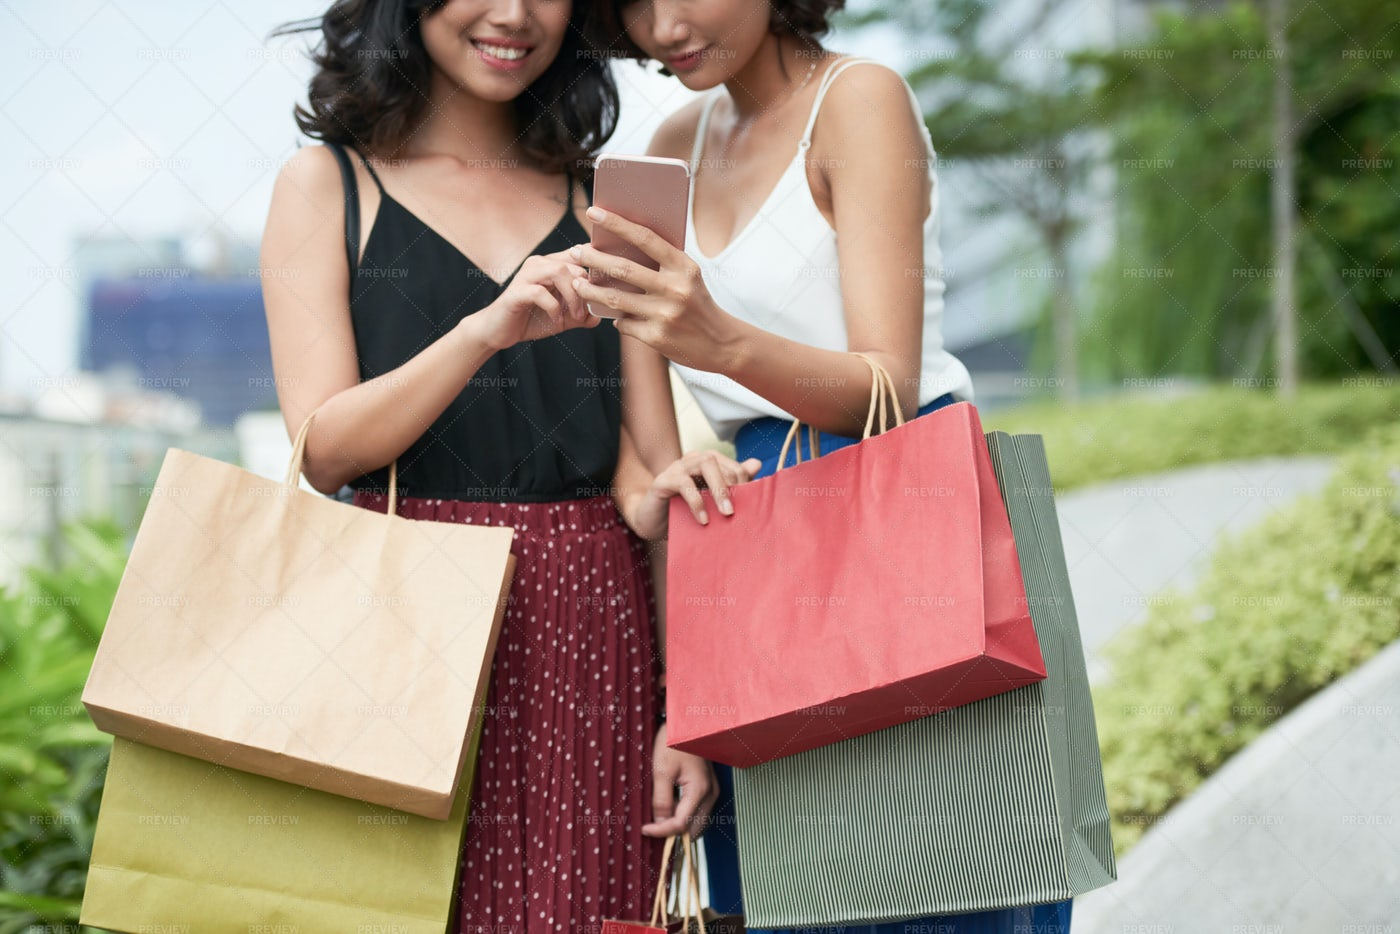 Smiling Women With Smartphone: Stock Photos